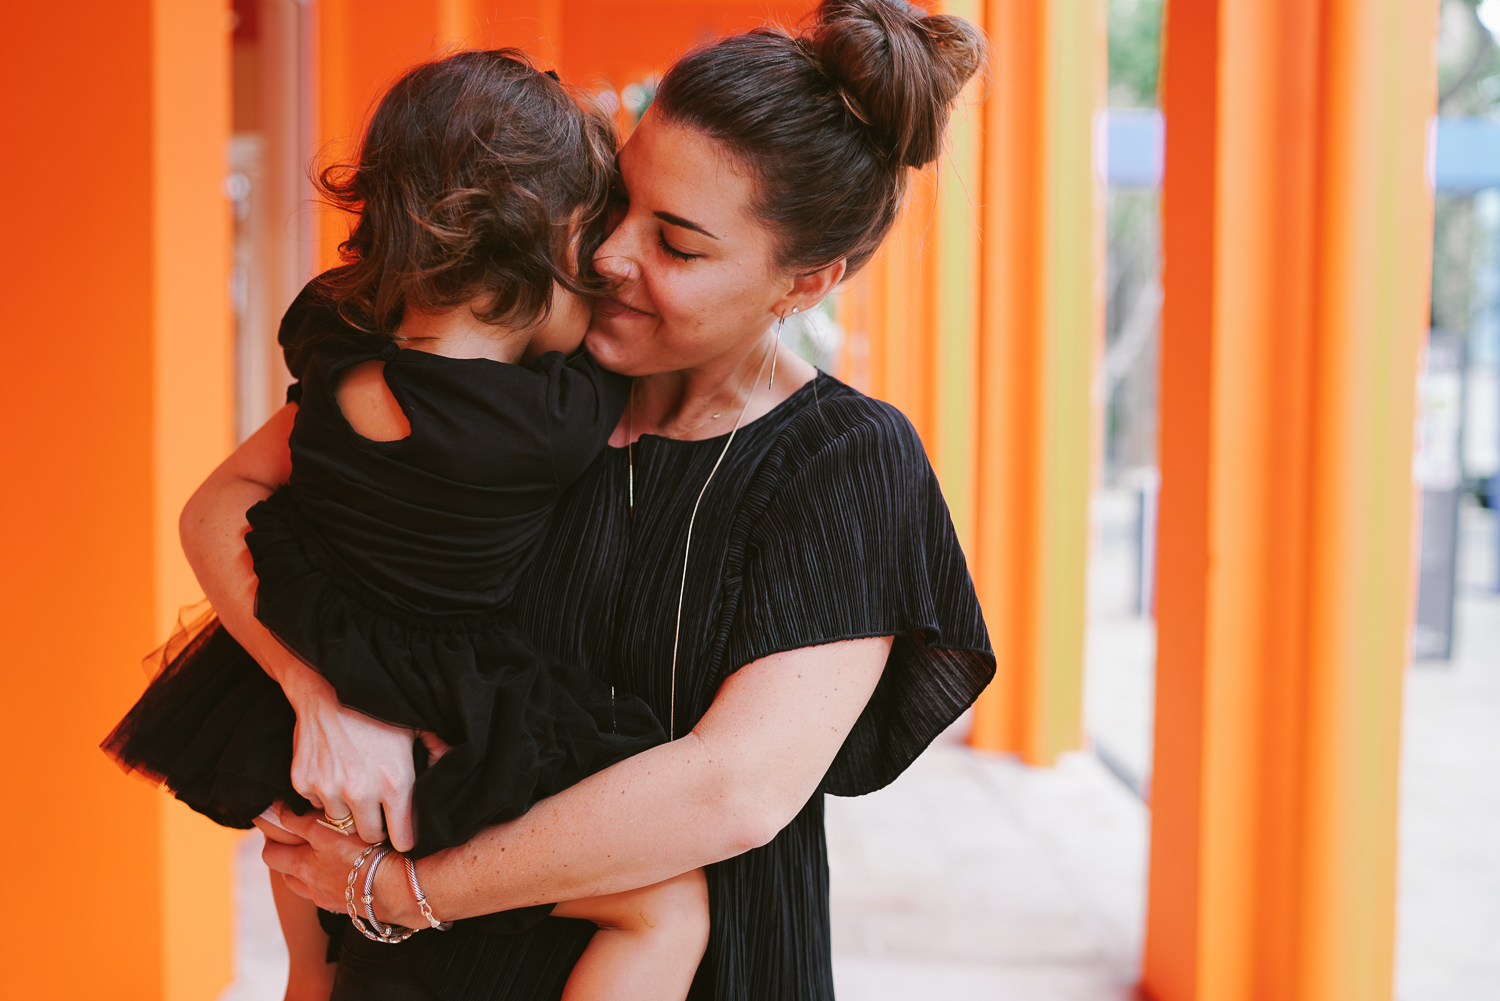 Mommy and Me Squarespace-18.jpg